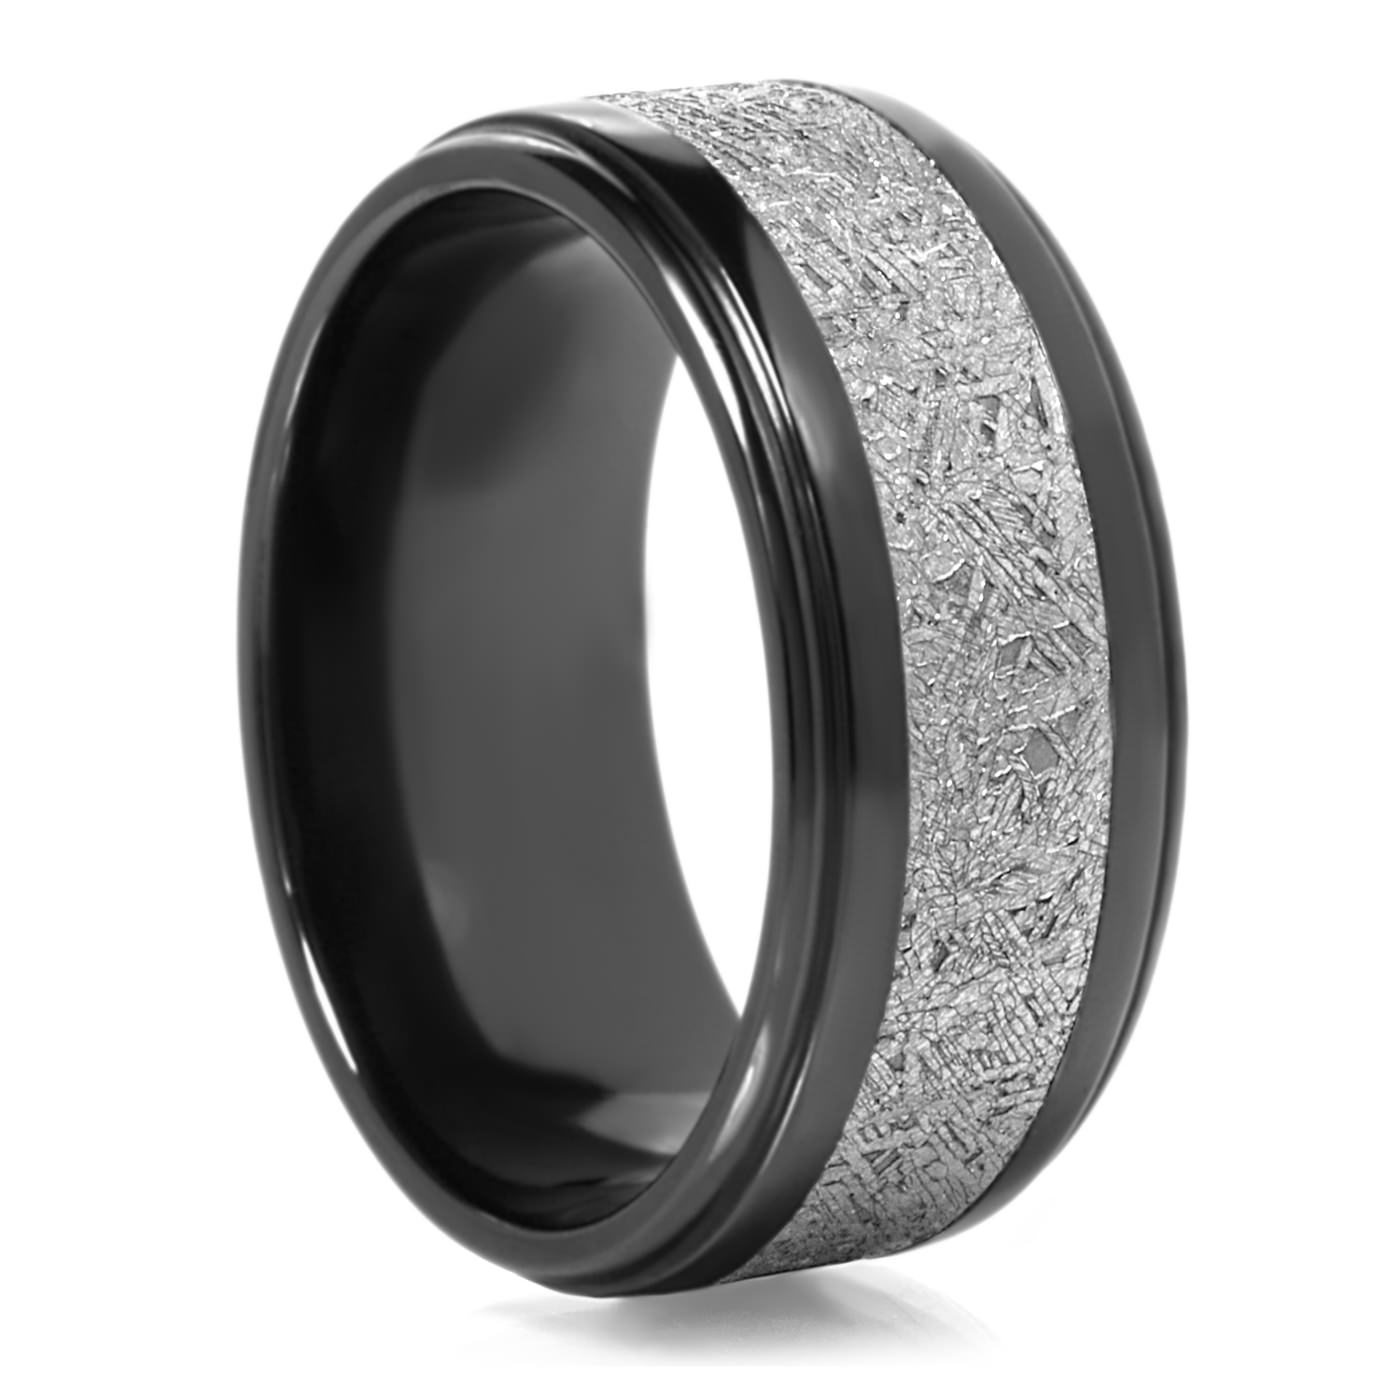 lashbrook black zirconium meteorite mens wedding band 90 day returns